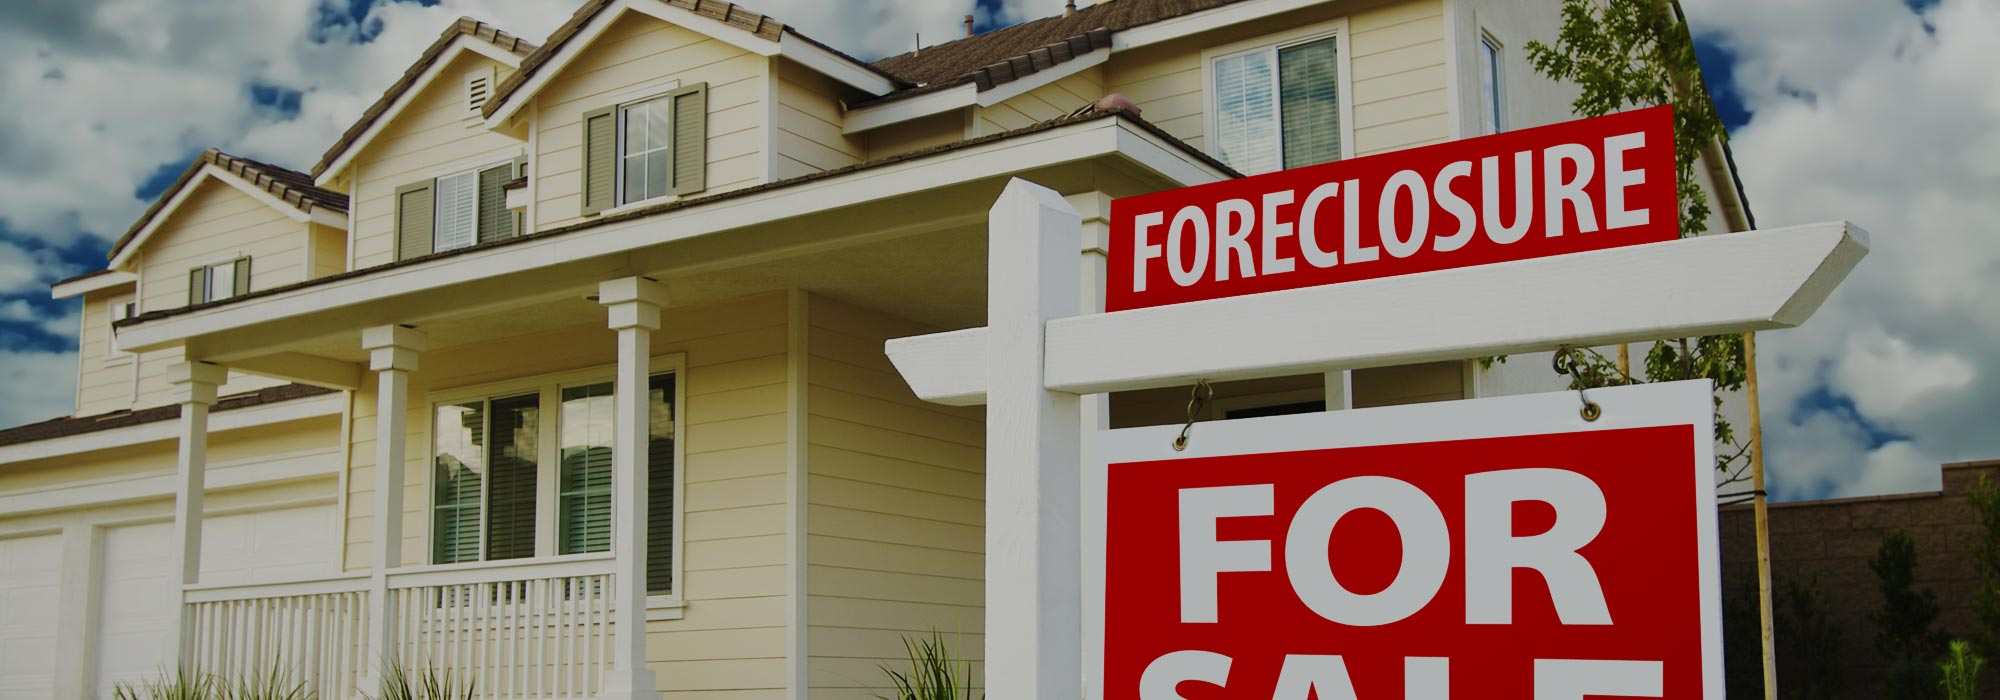 Property going to be foreclosed?